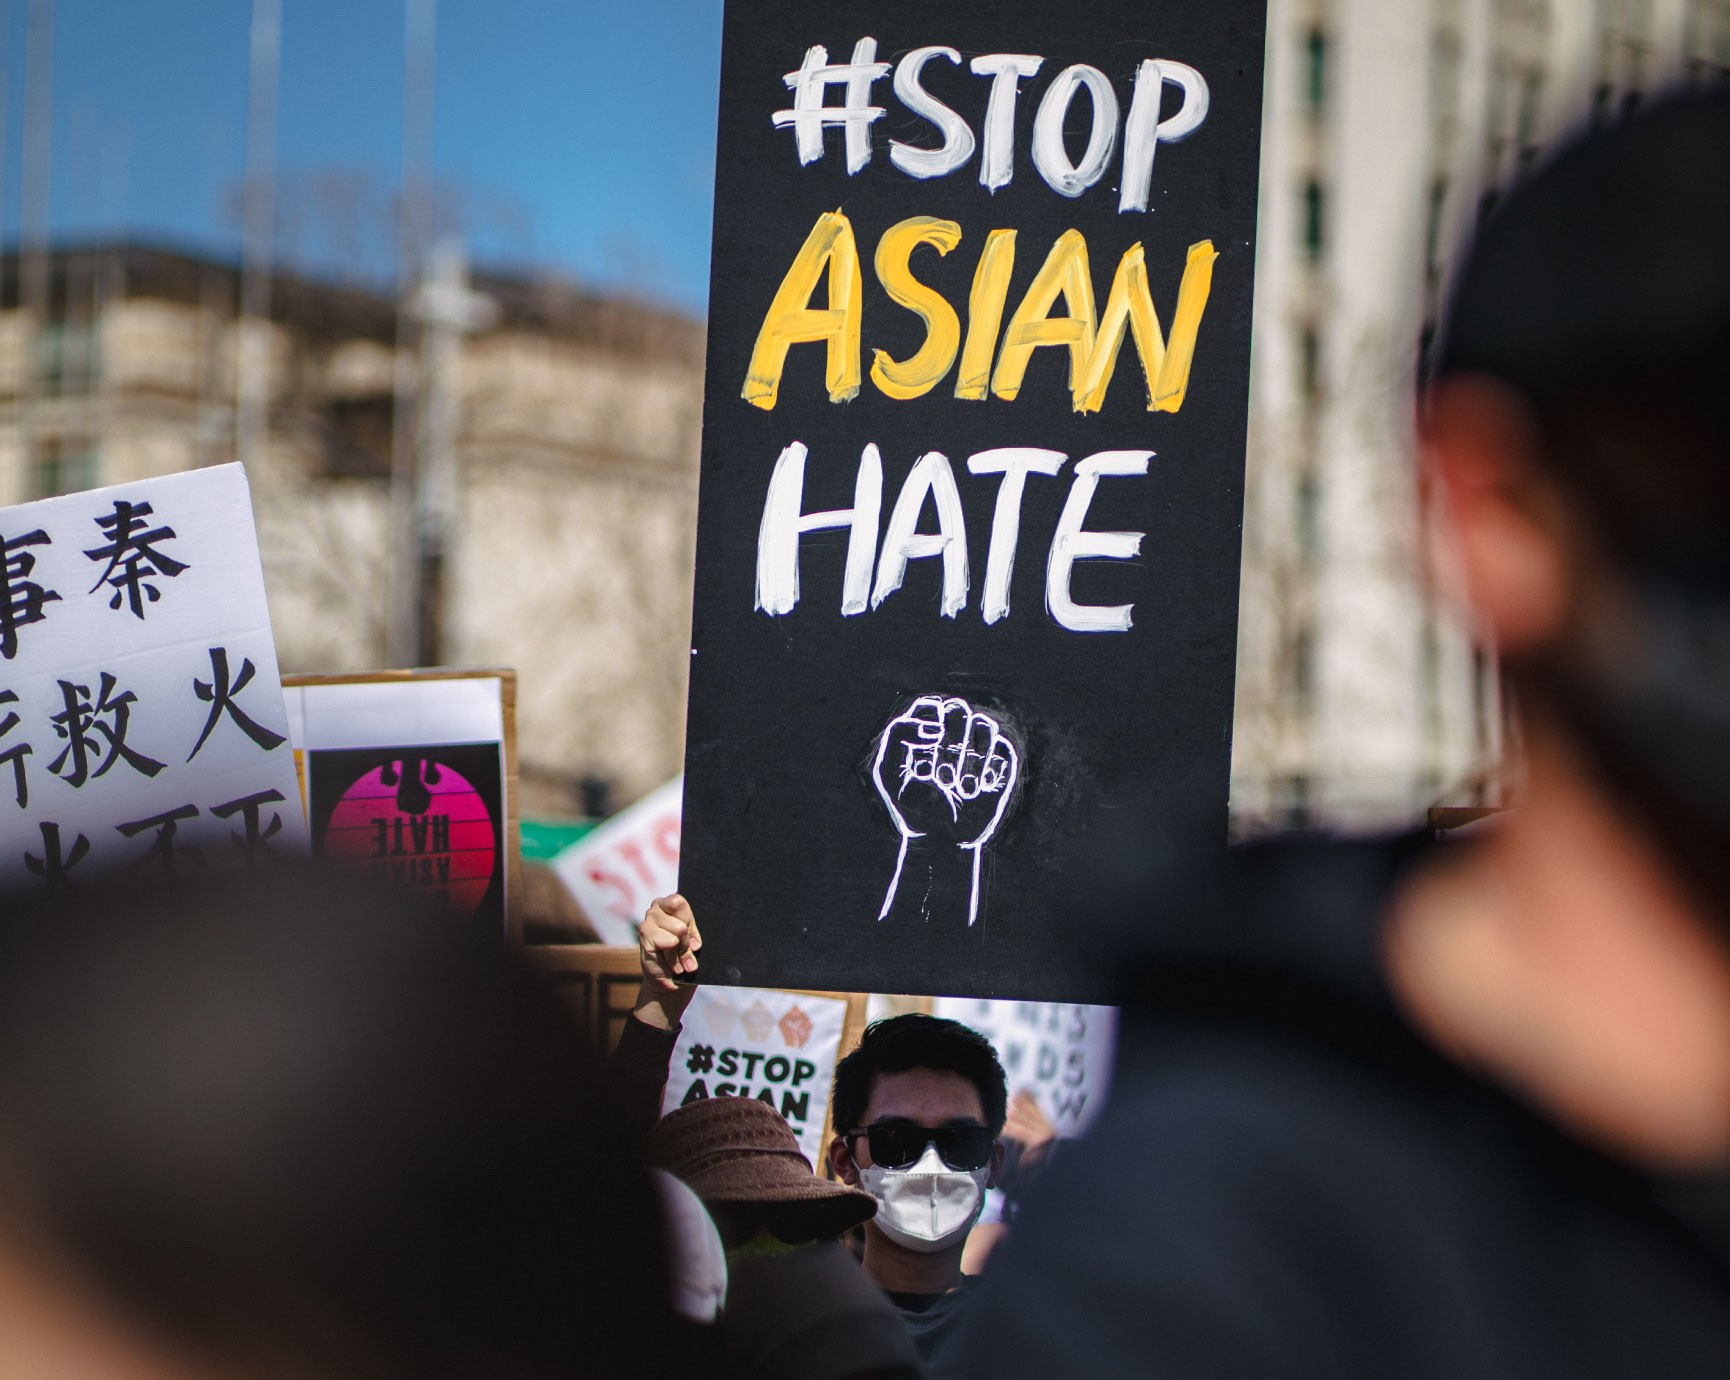 A person holds up a large #StopAsianHate sign at a large rally